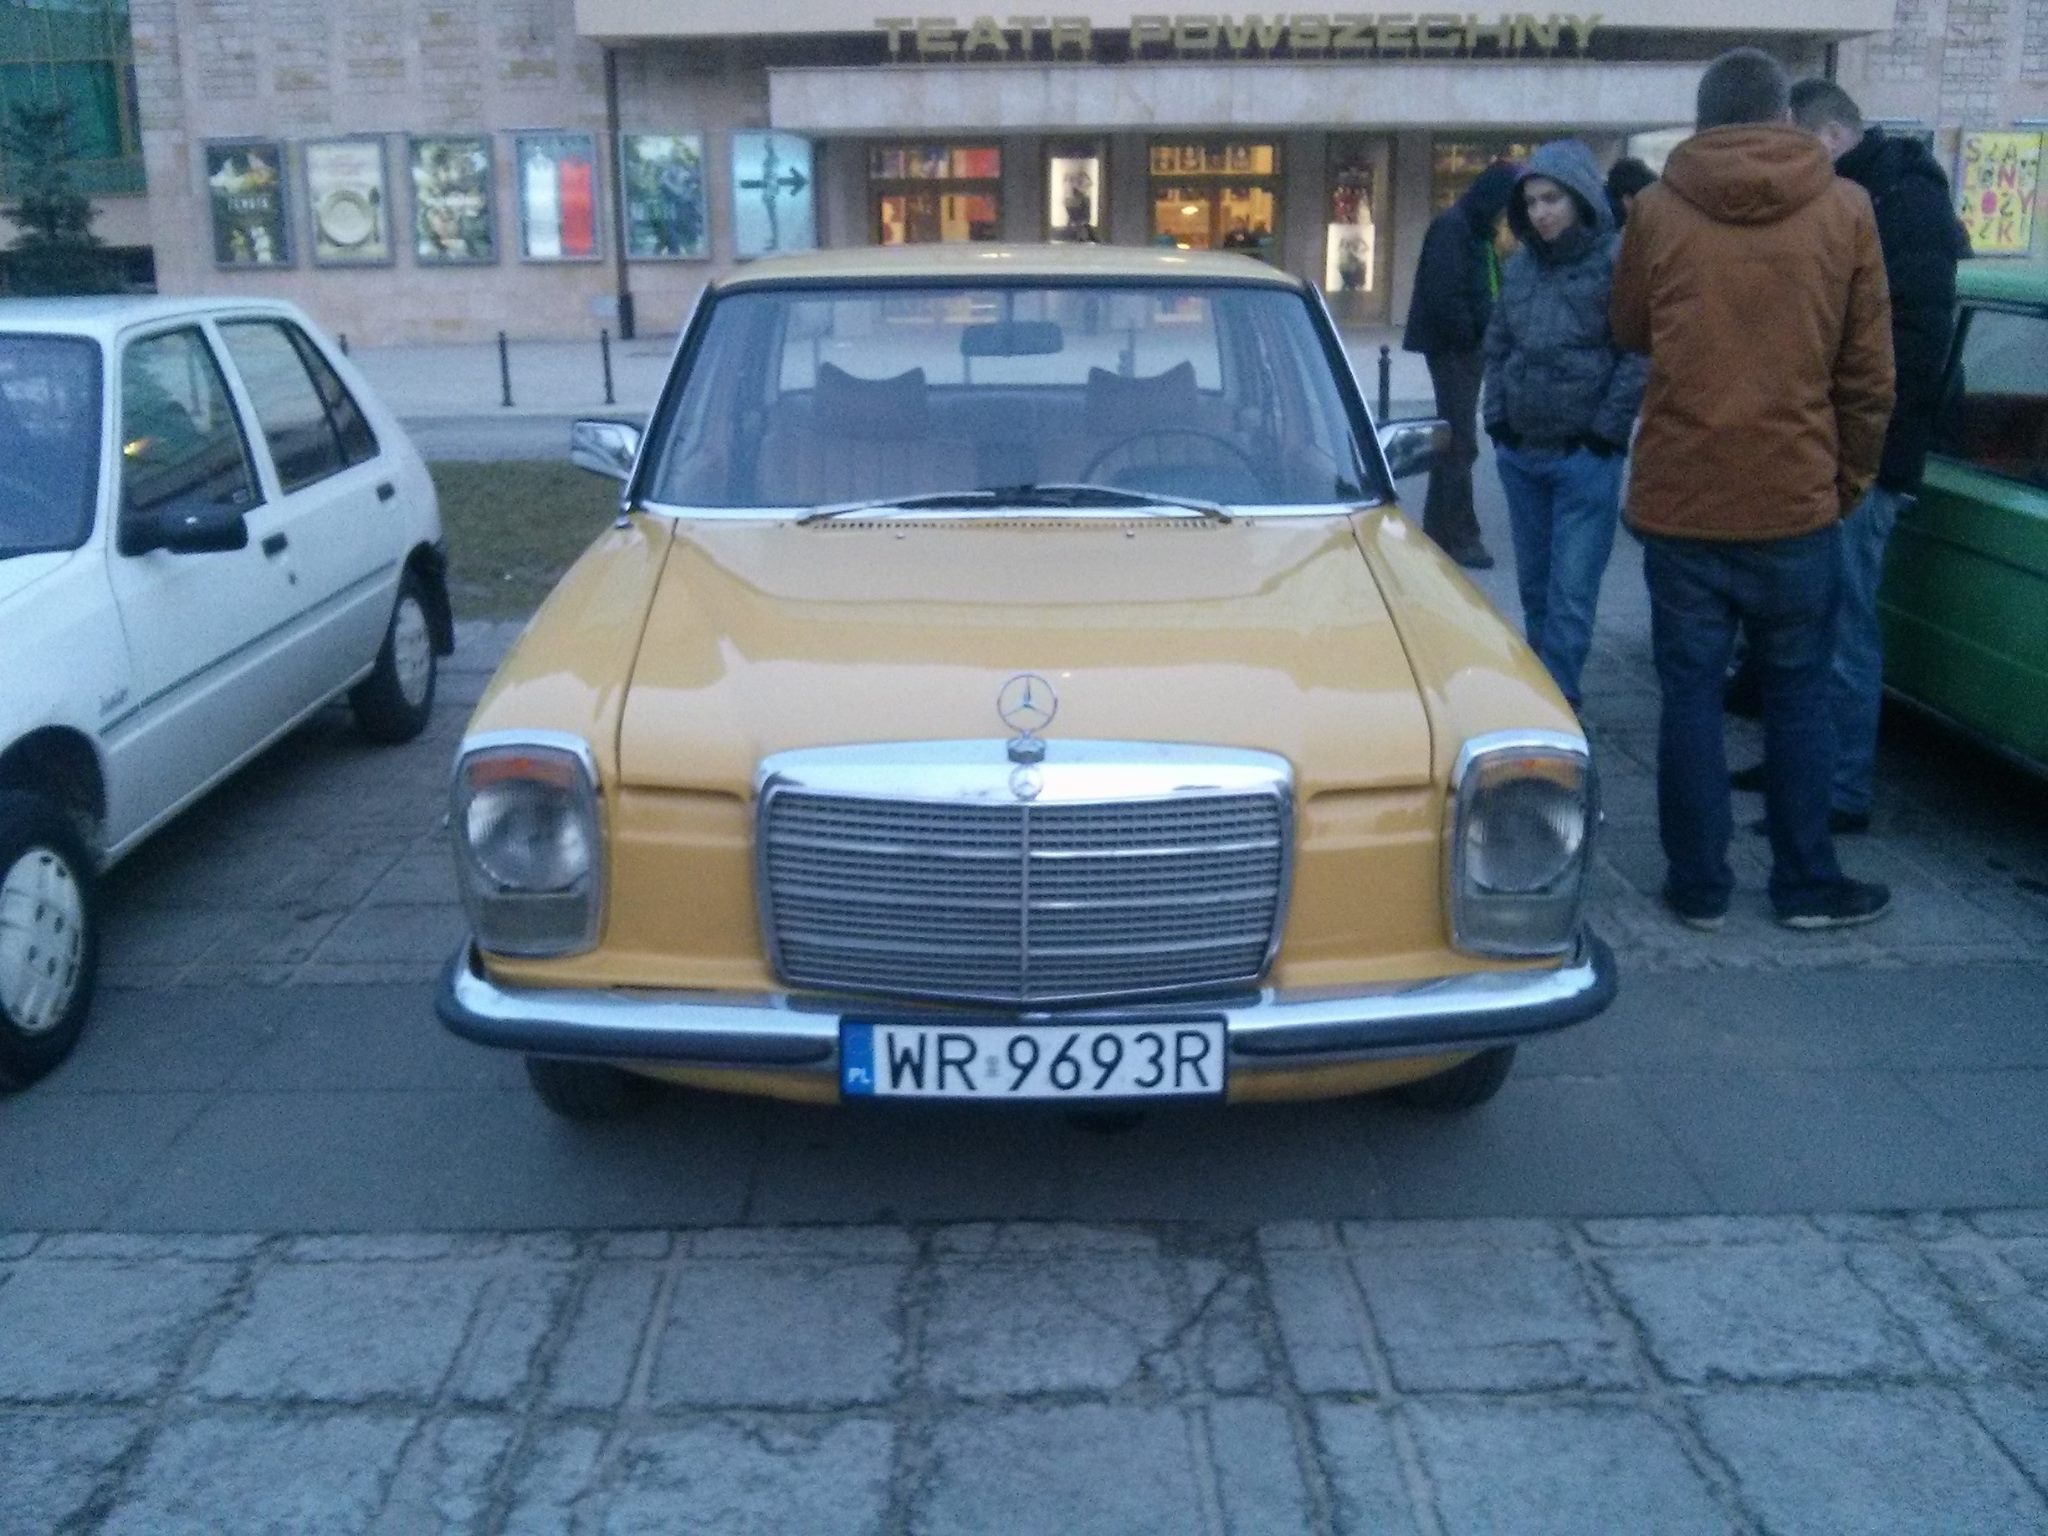 http://124coupe.pl/hosting/images/6zdz.jpg